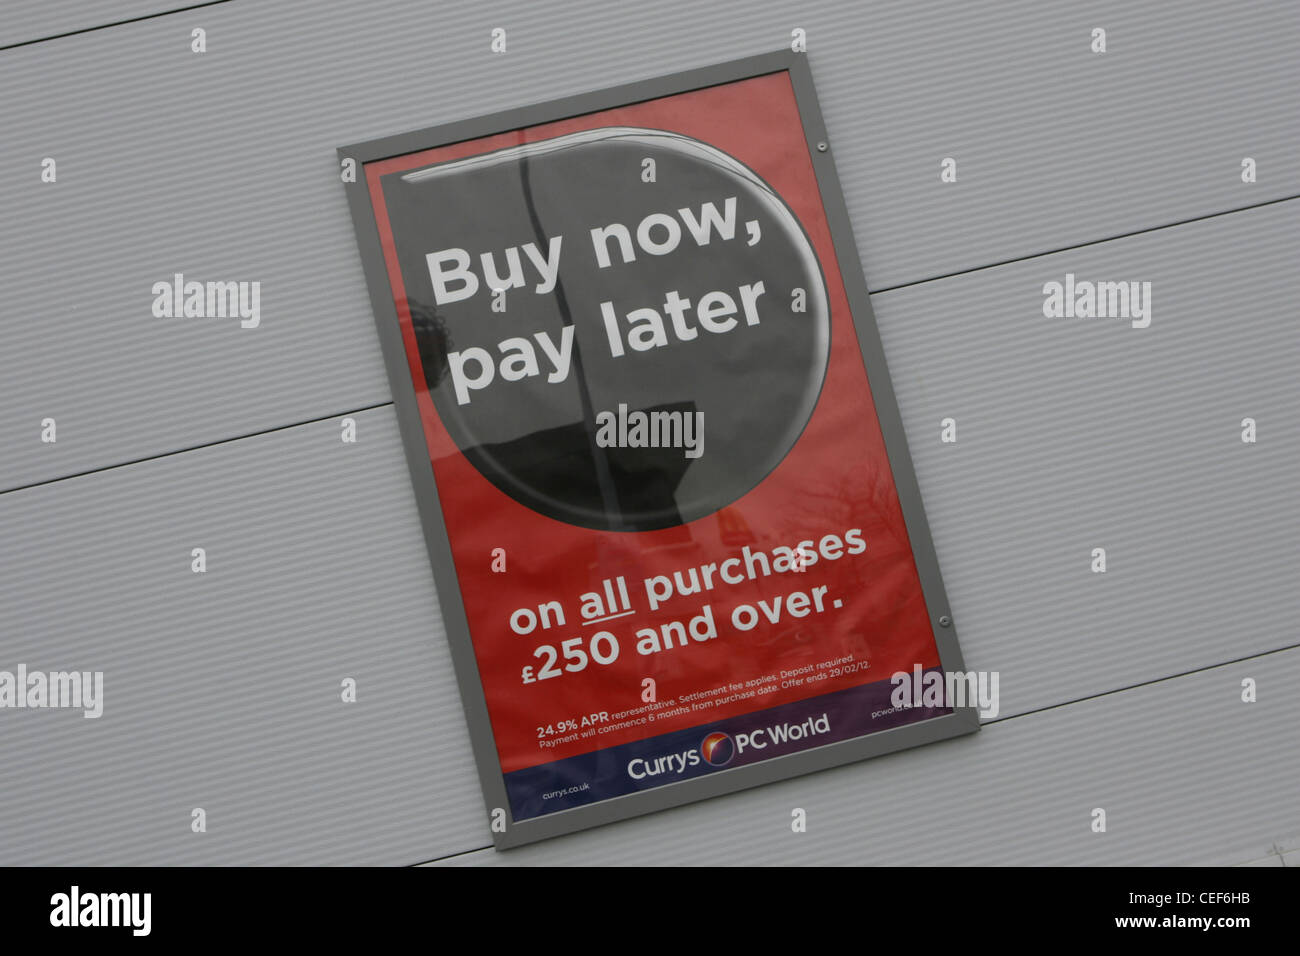 buy now pay later, dixons, currys, pcworld - Stock Image